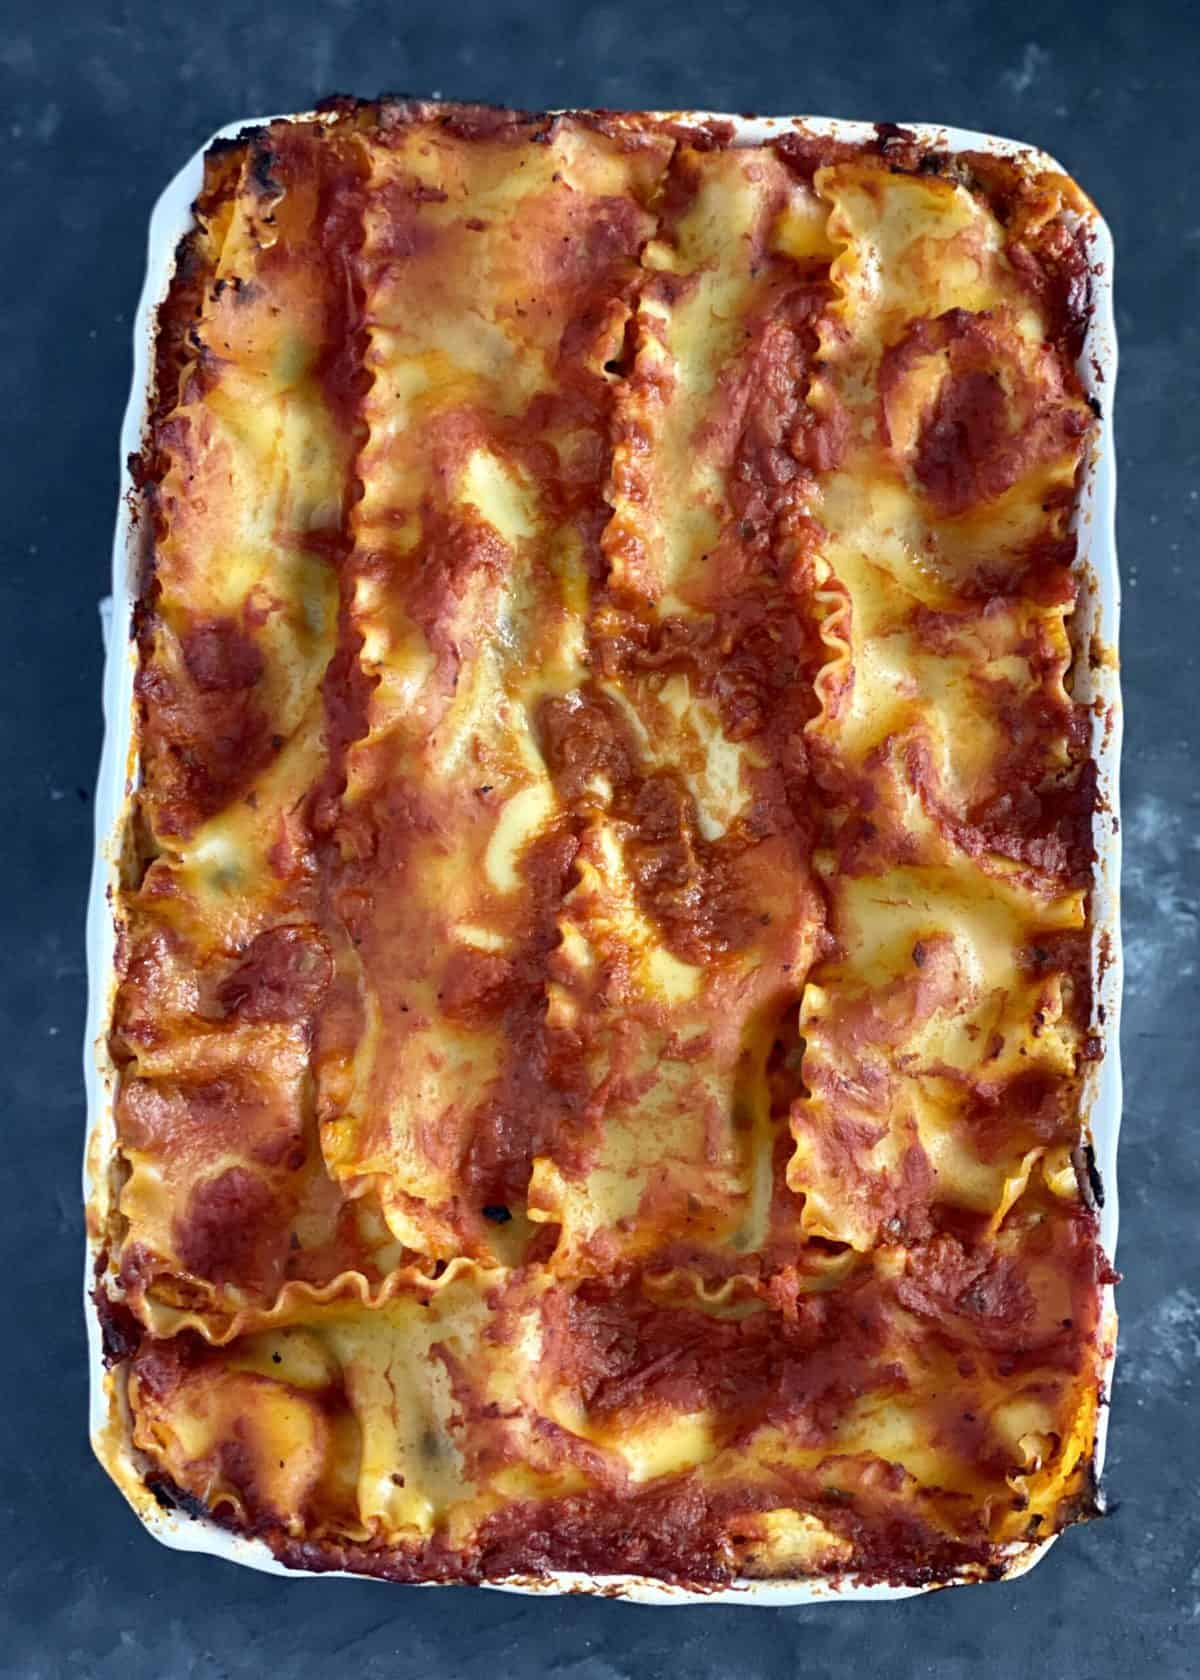 Baked veggie lasagna in a dish.